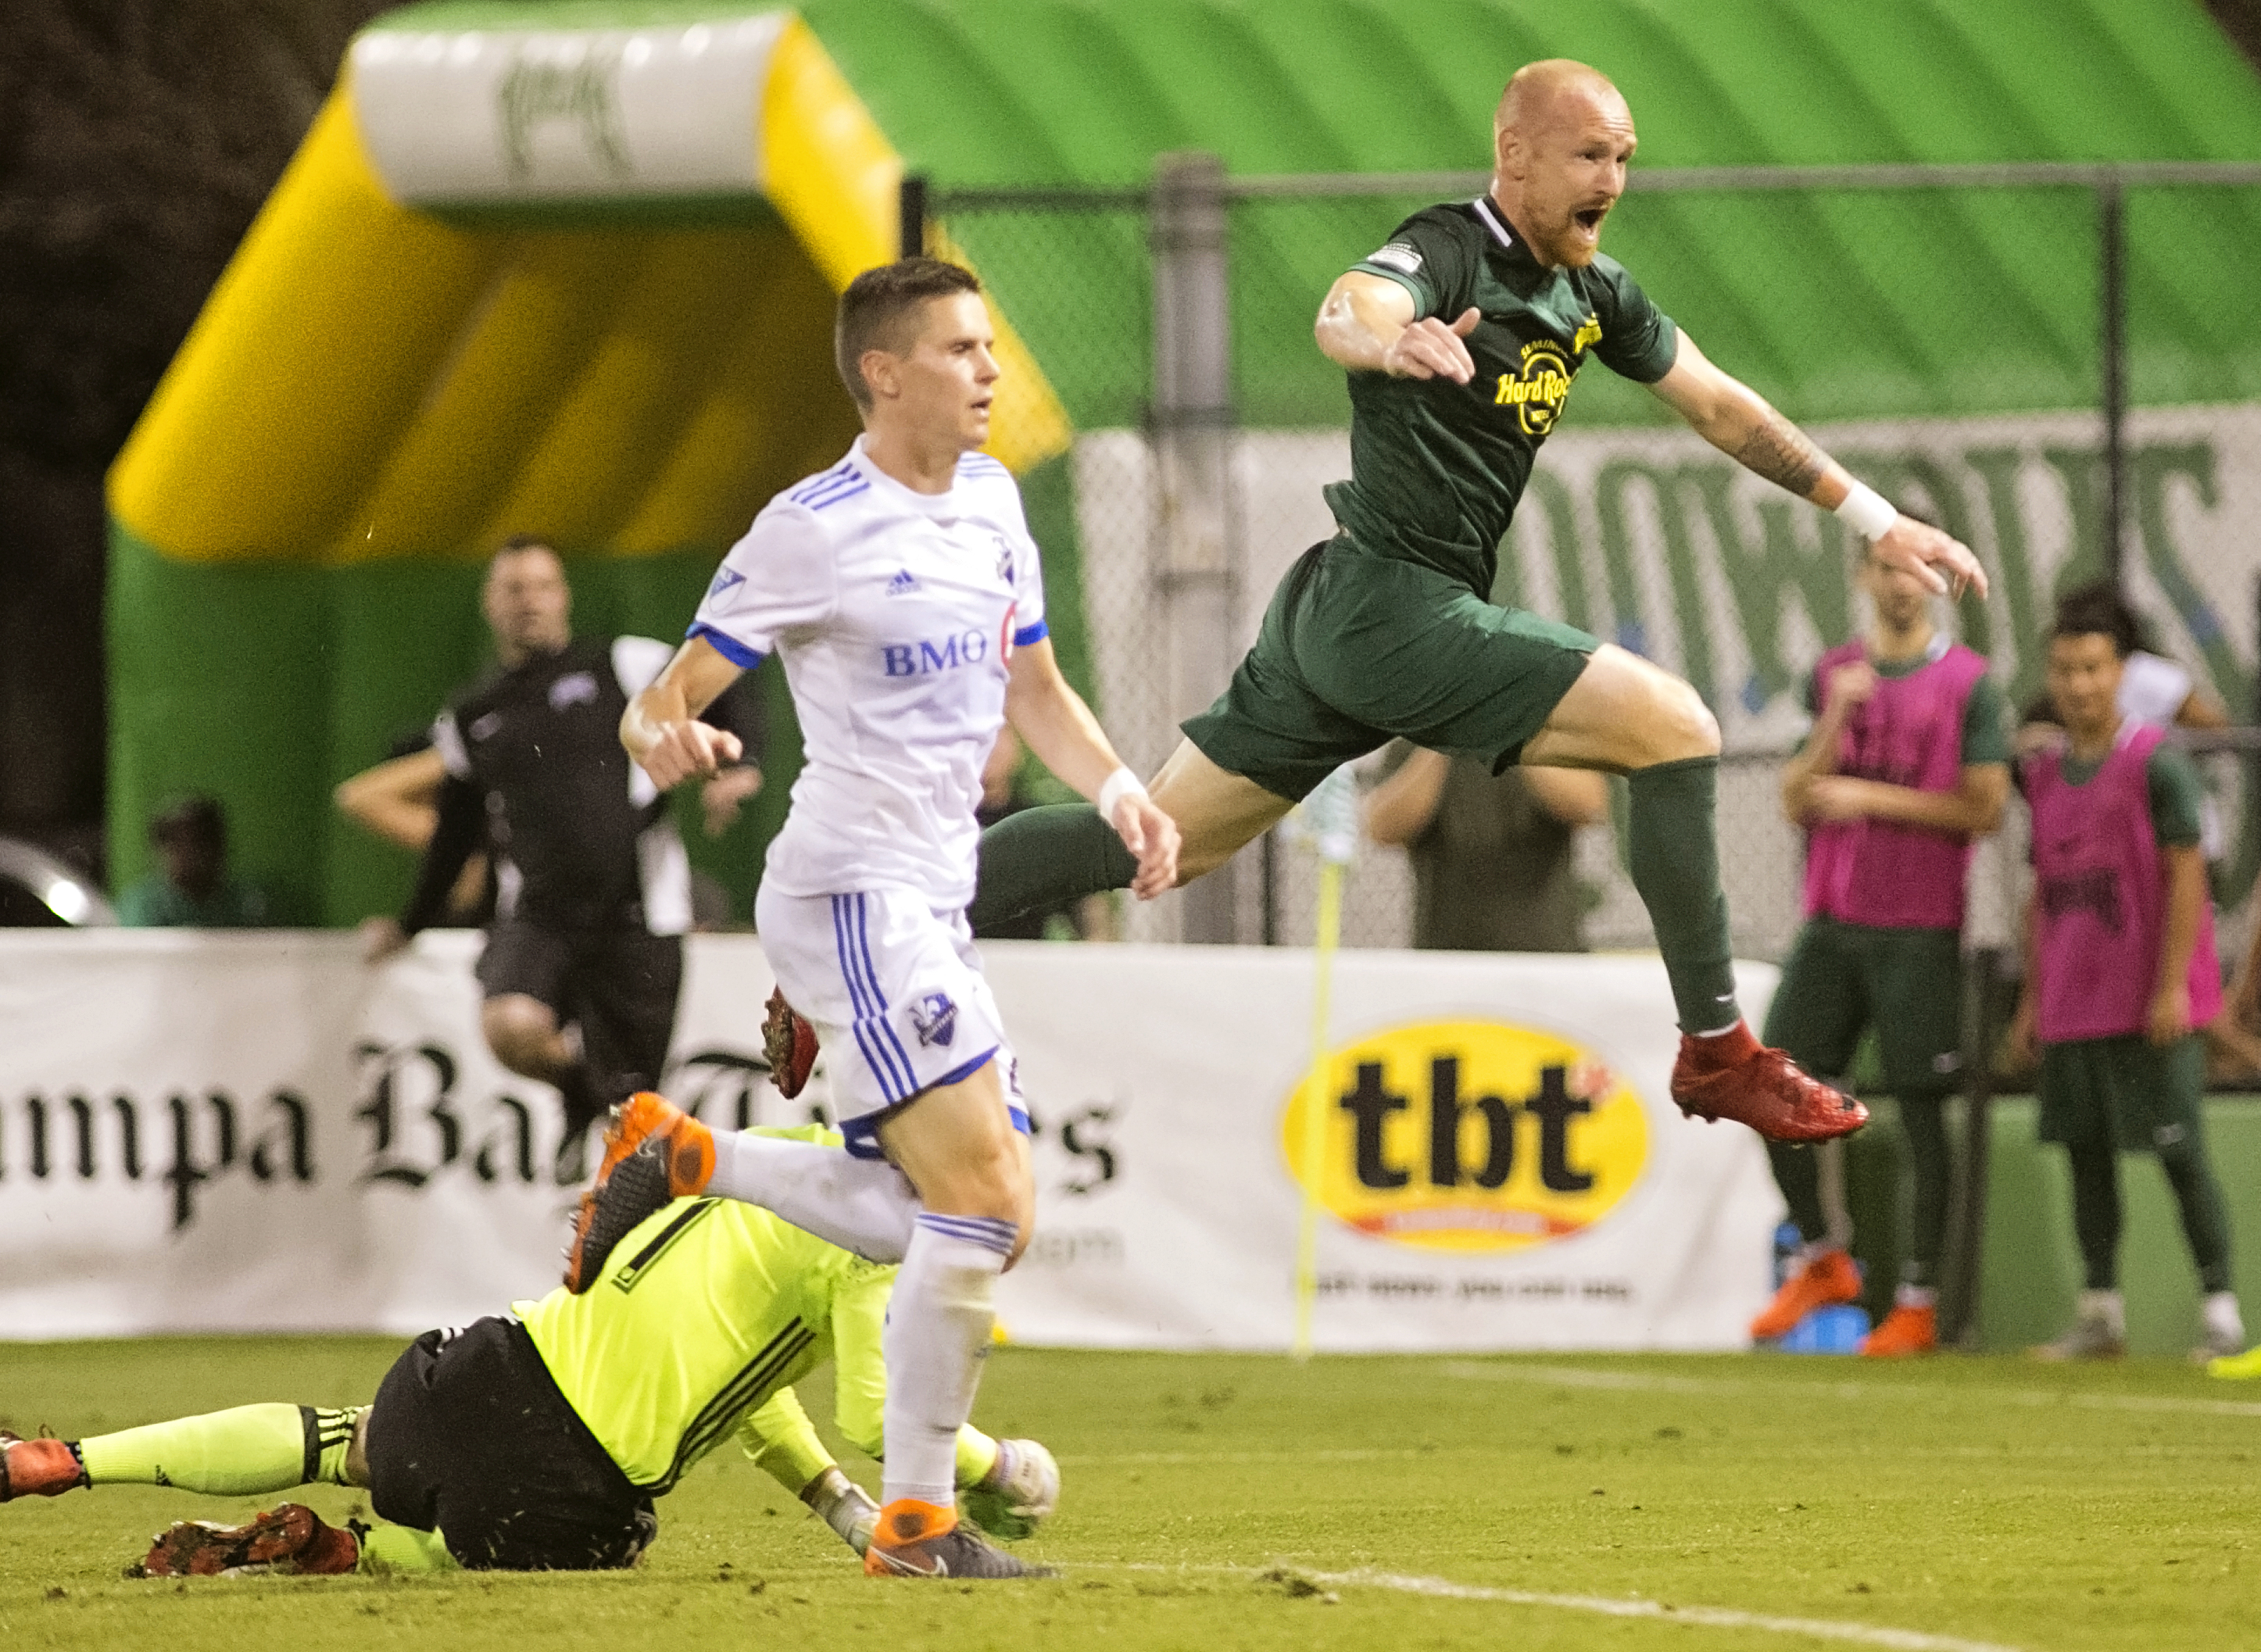 Graf's goal was the first of the season for the Rowdies./CARMEN MANDATO